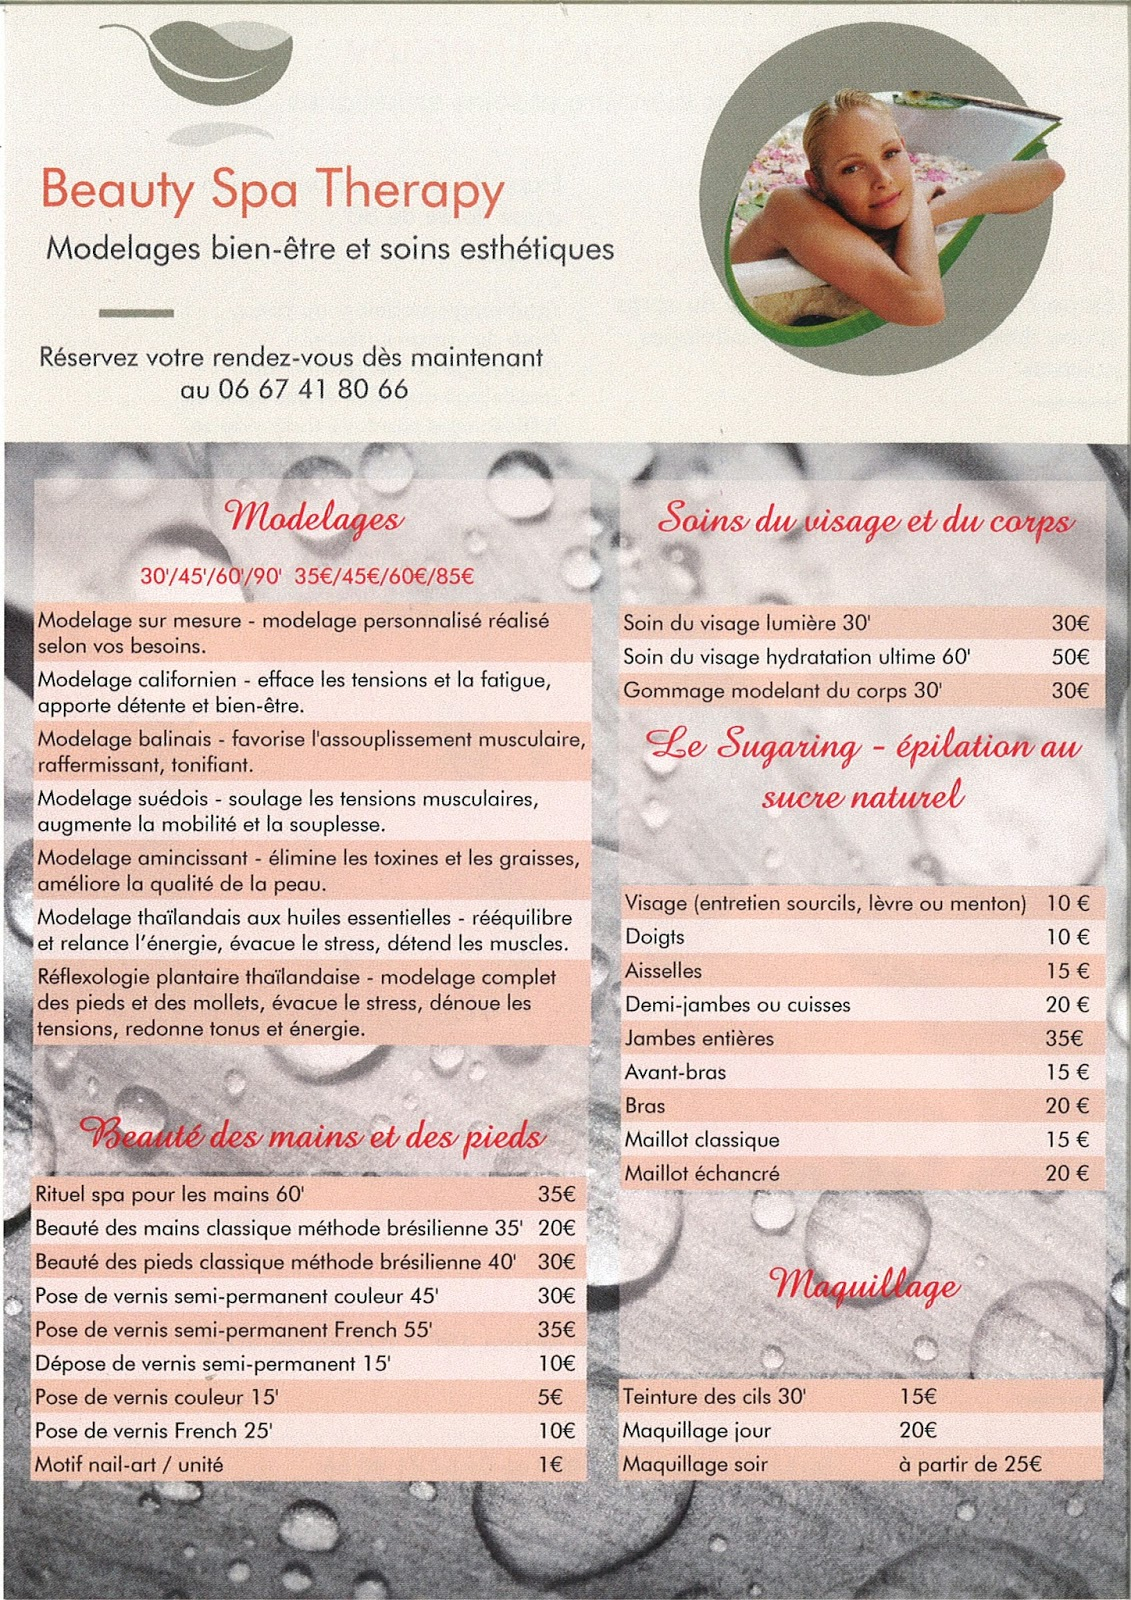 Beauty Spa Therapy 2014